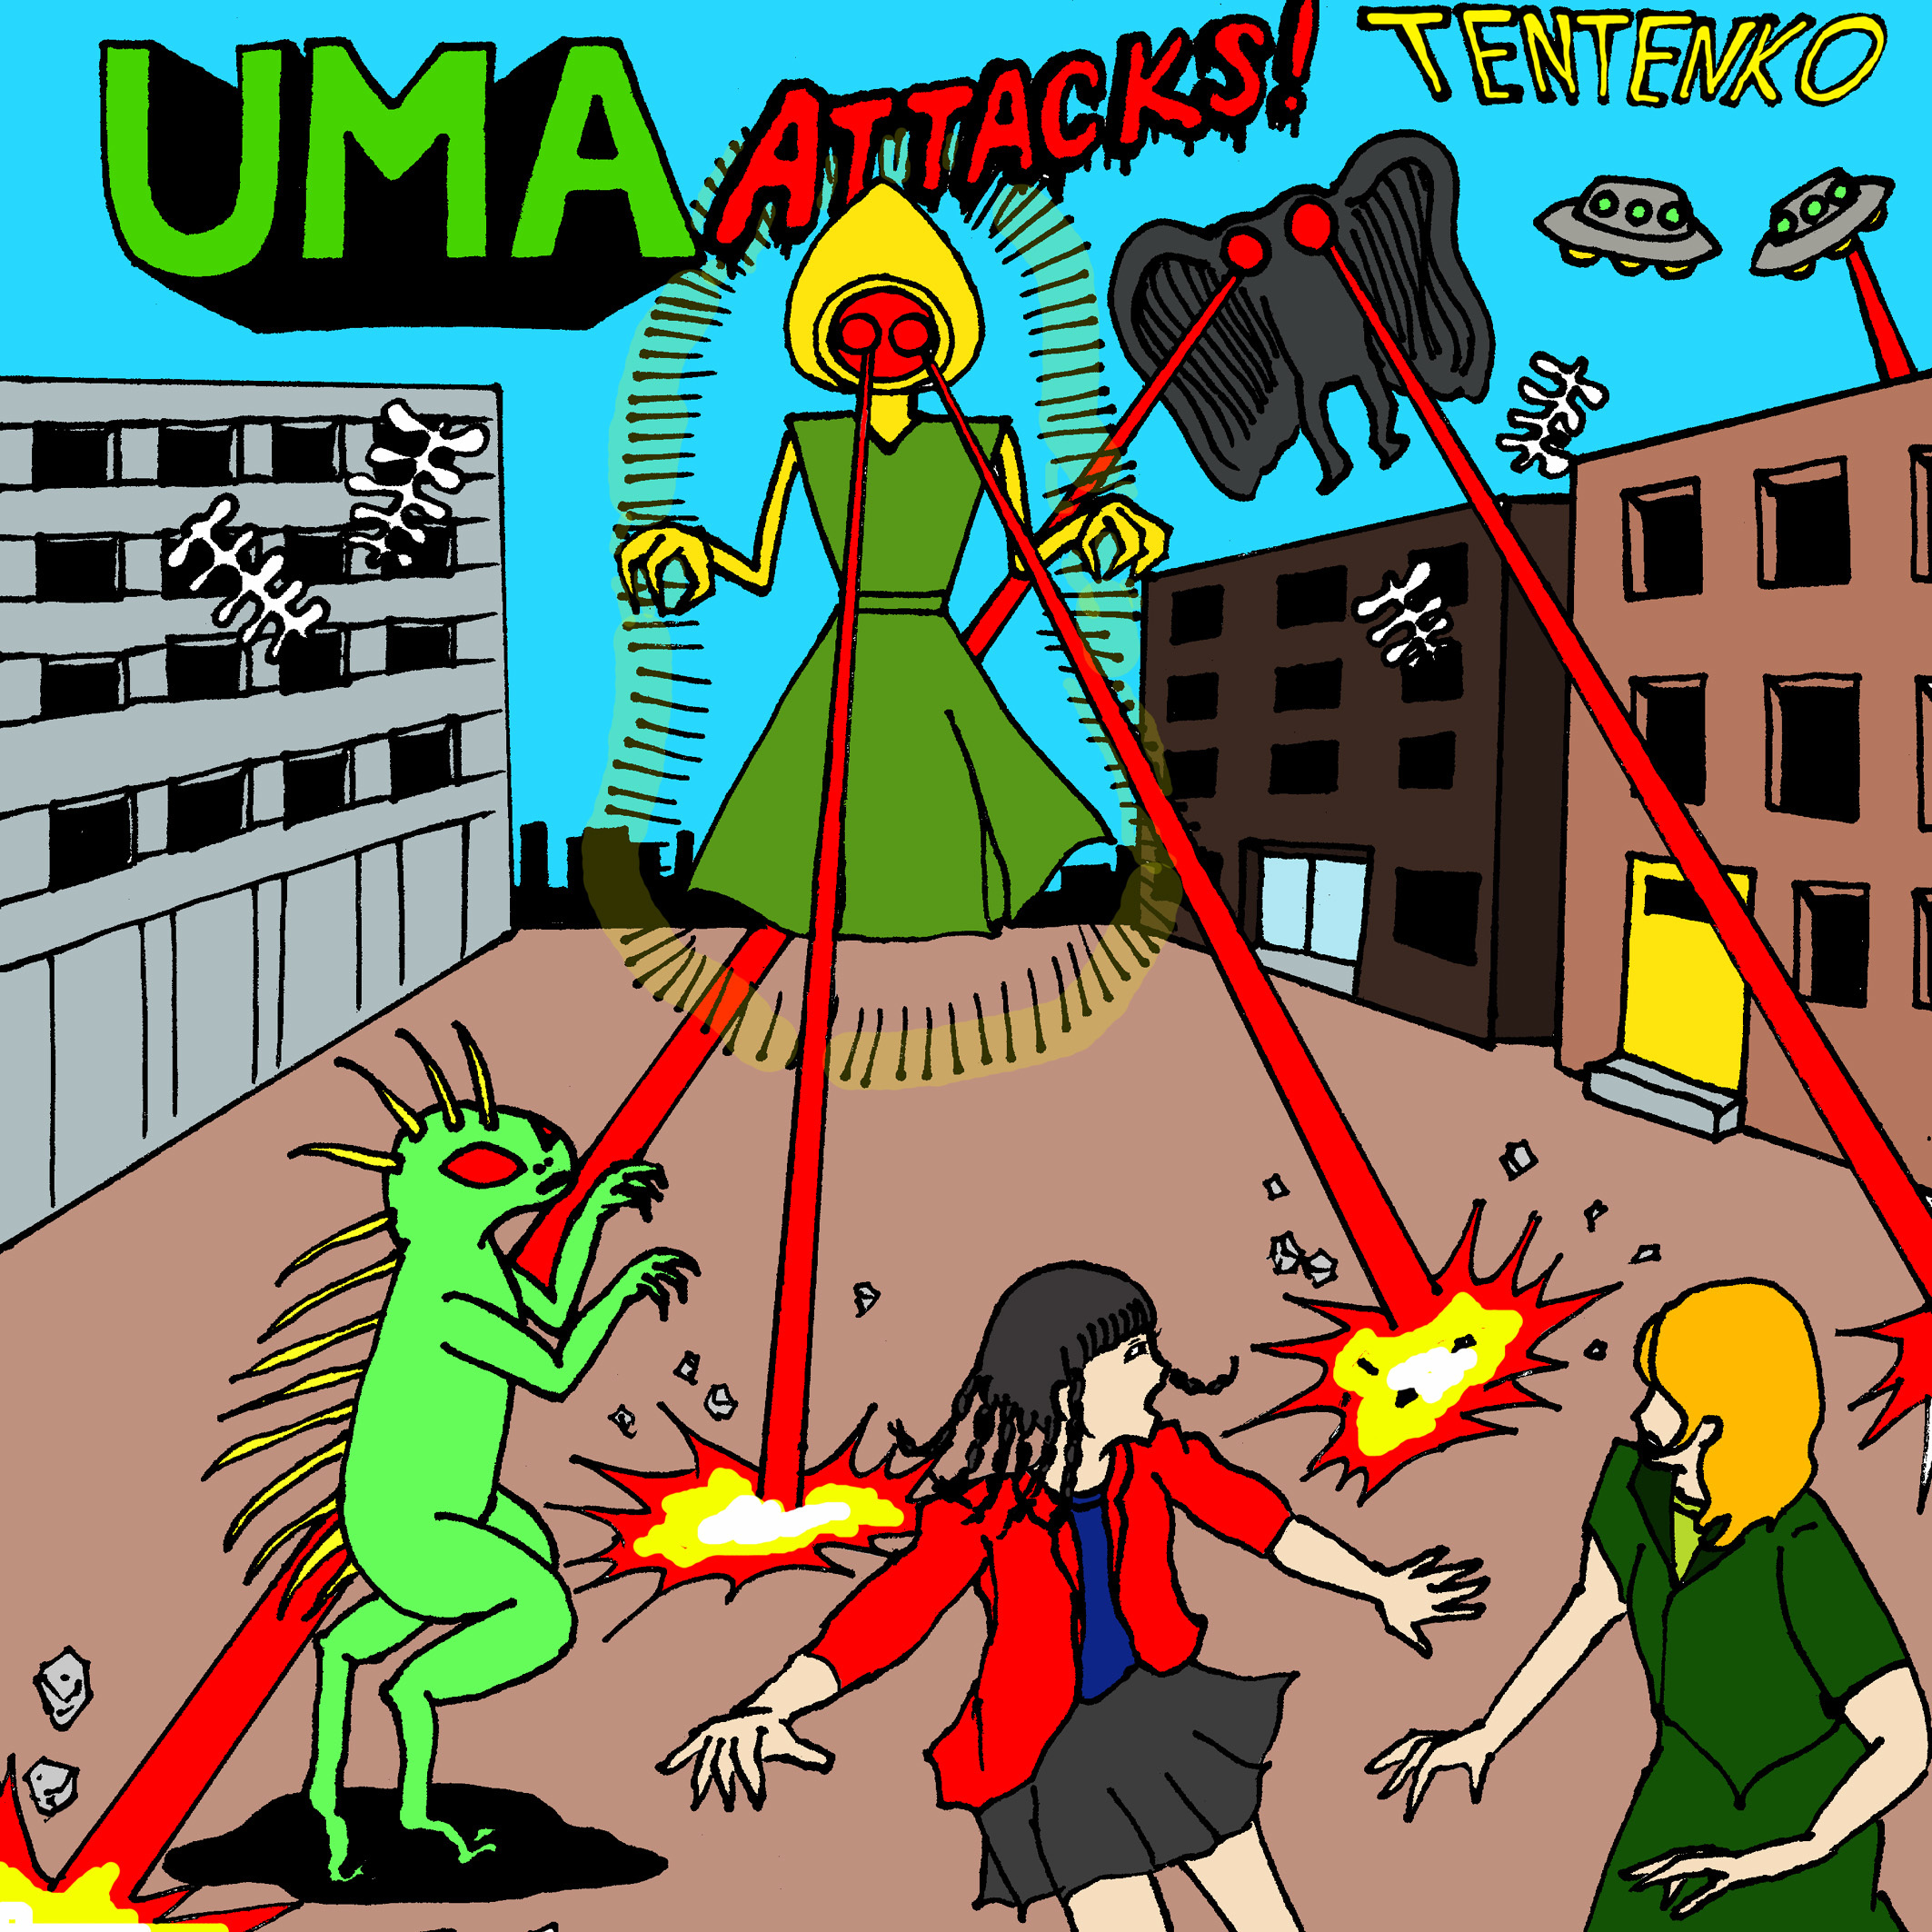 UMA ATTACKS!